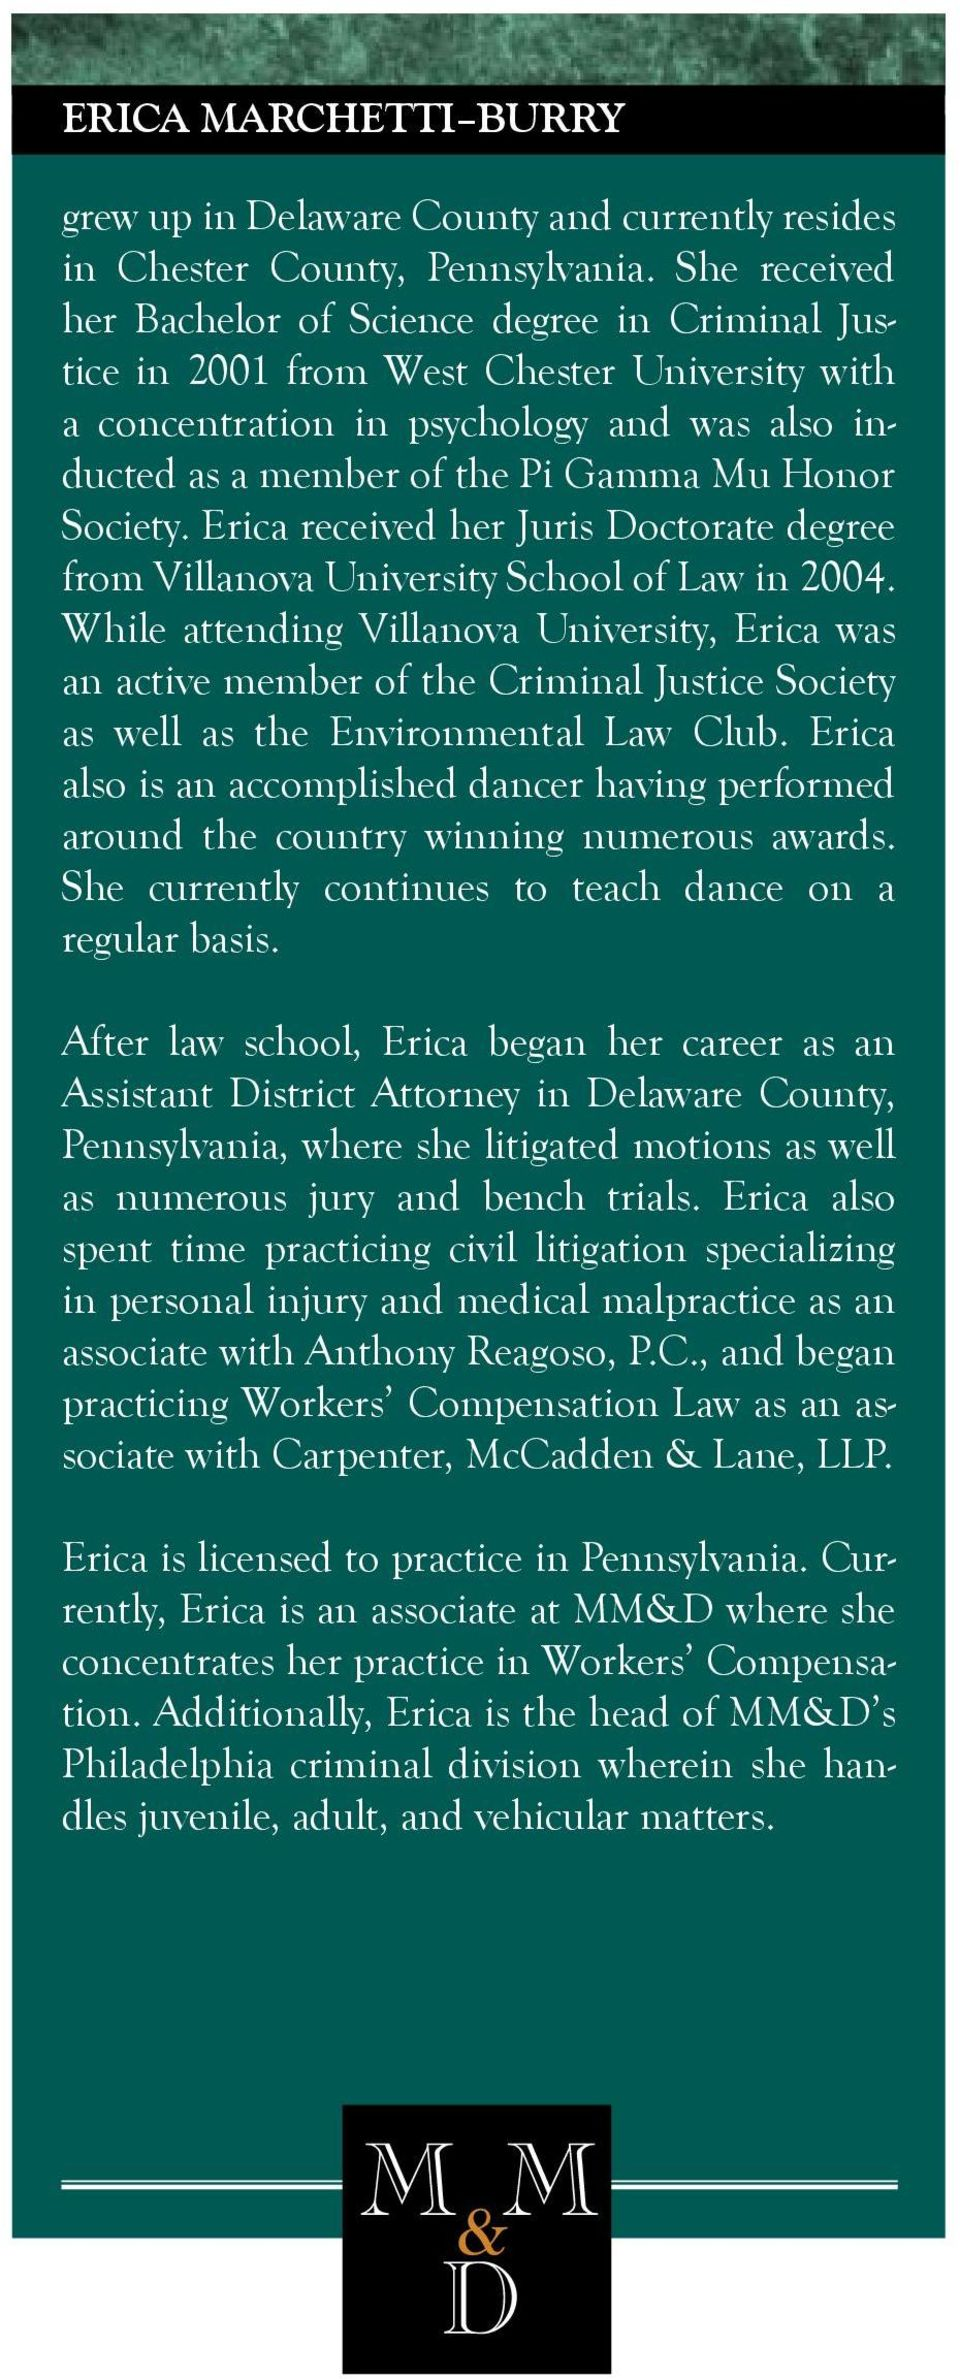 Society. Erica received her Juris Doctorate degree from Villanova University School of Law in 2004.